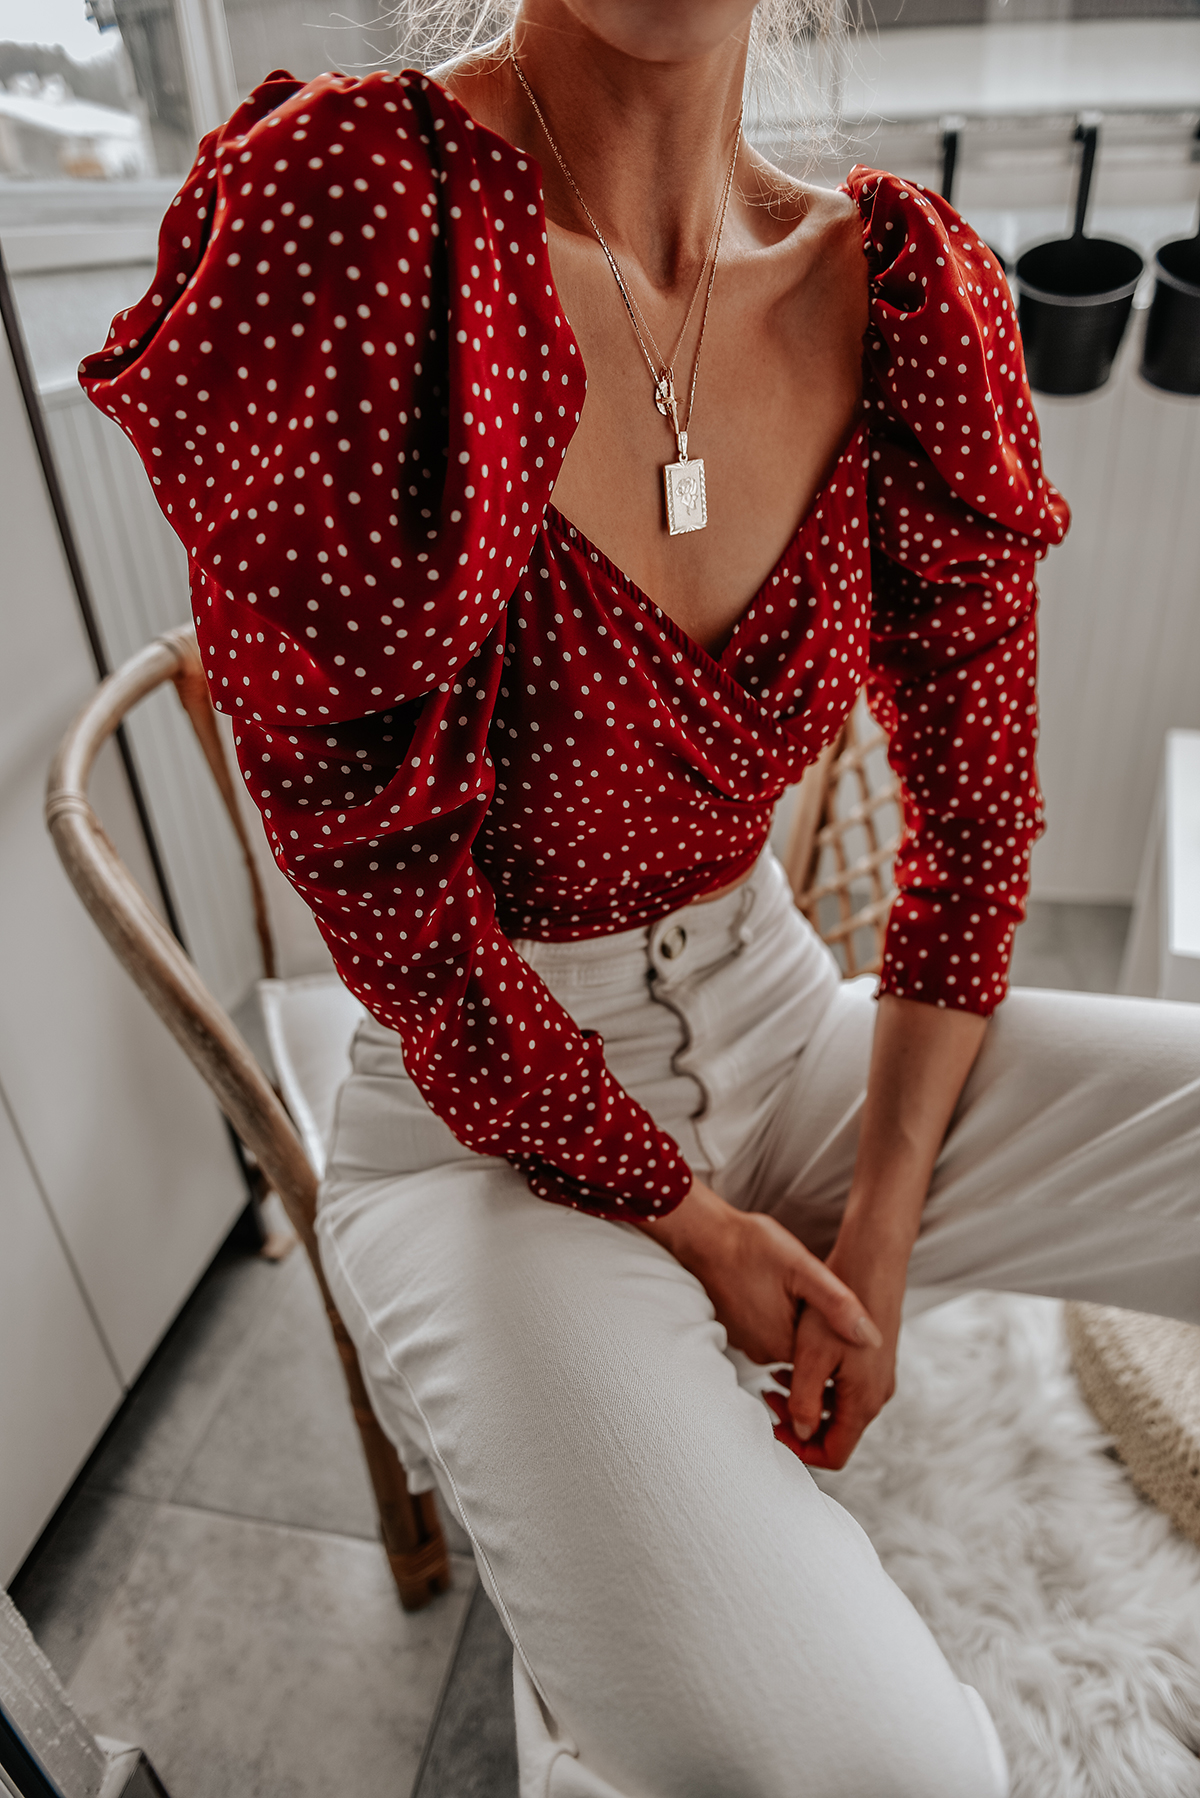 Knot Polka Dot Print Top